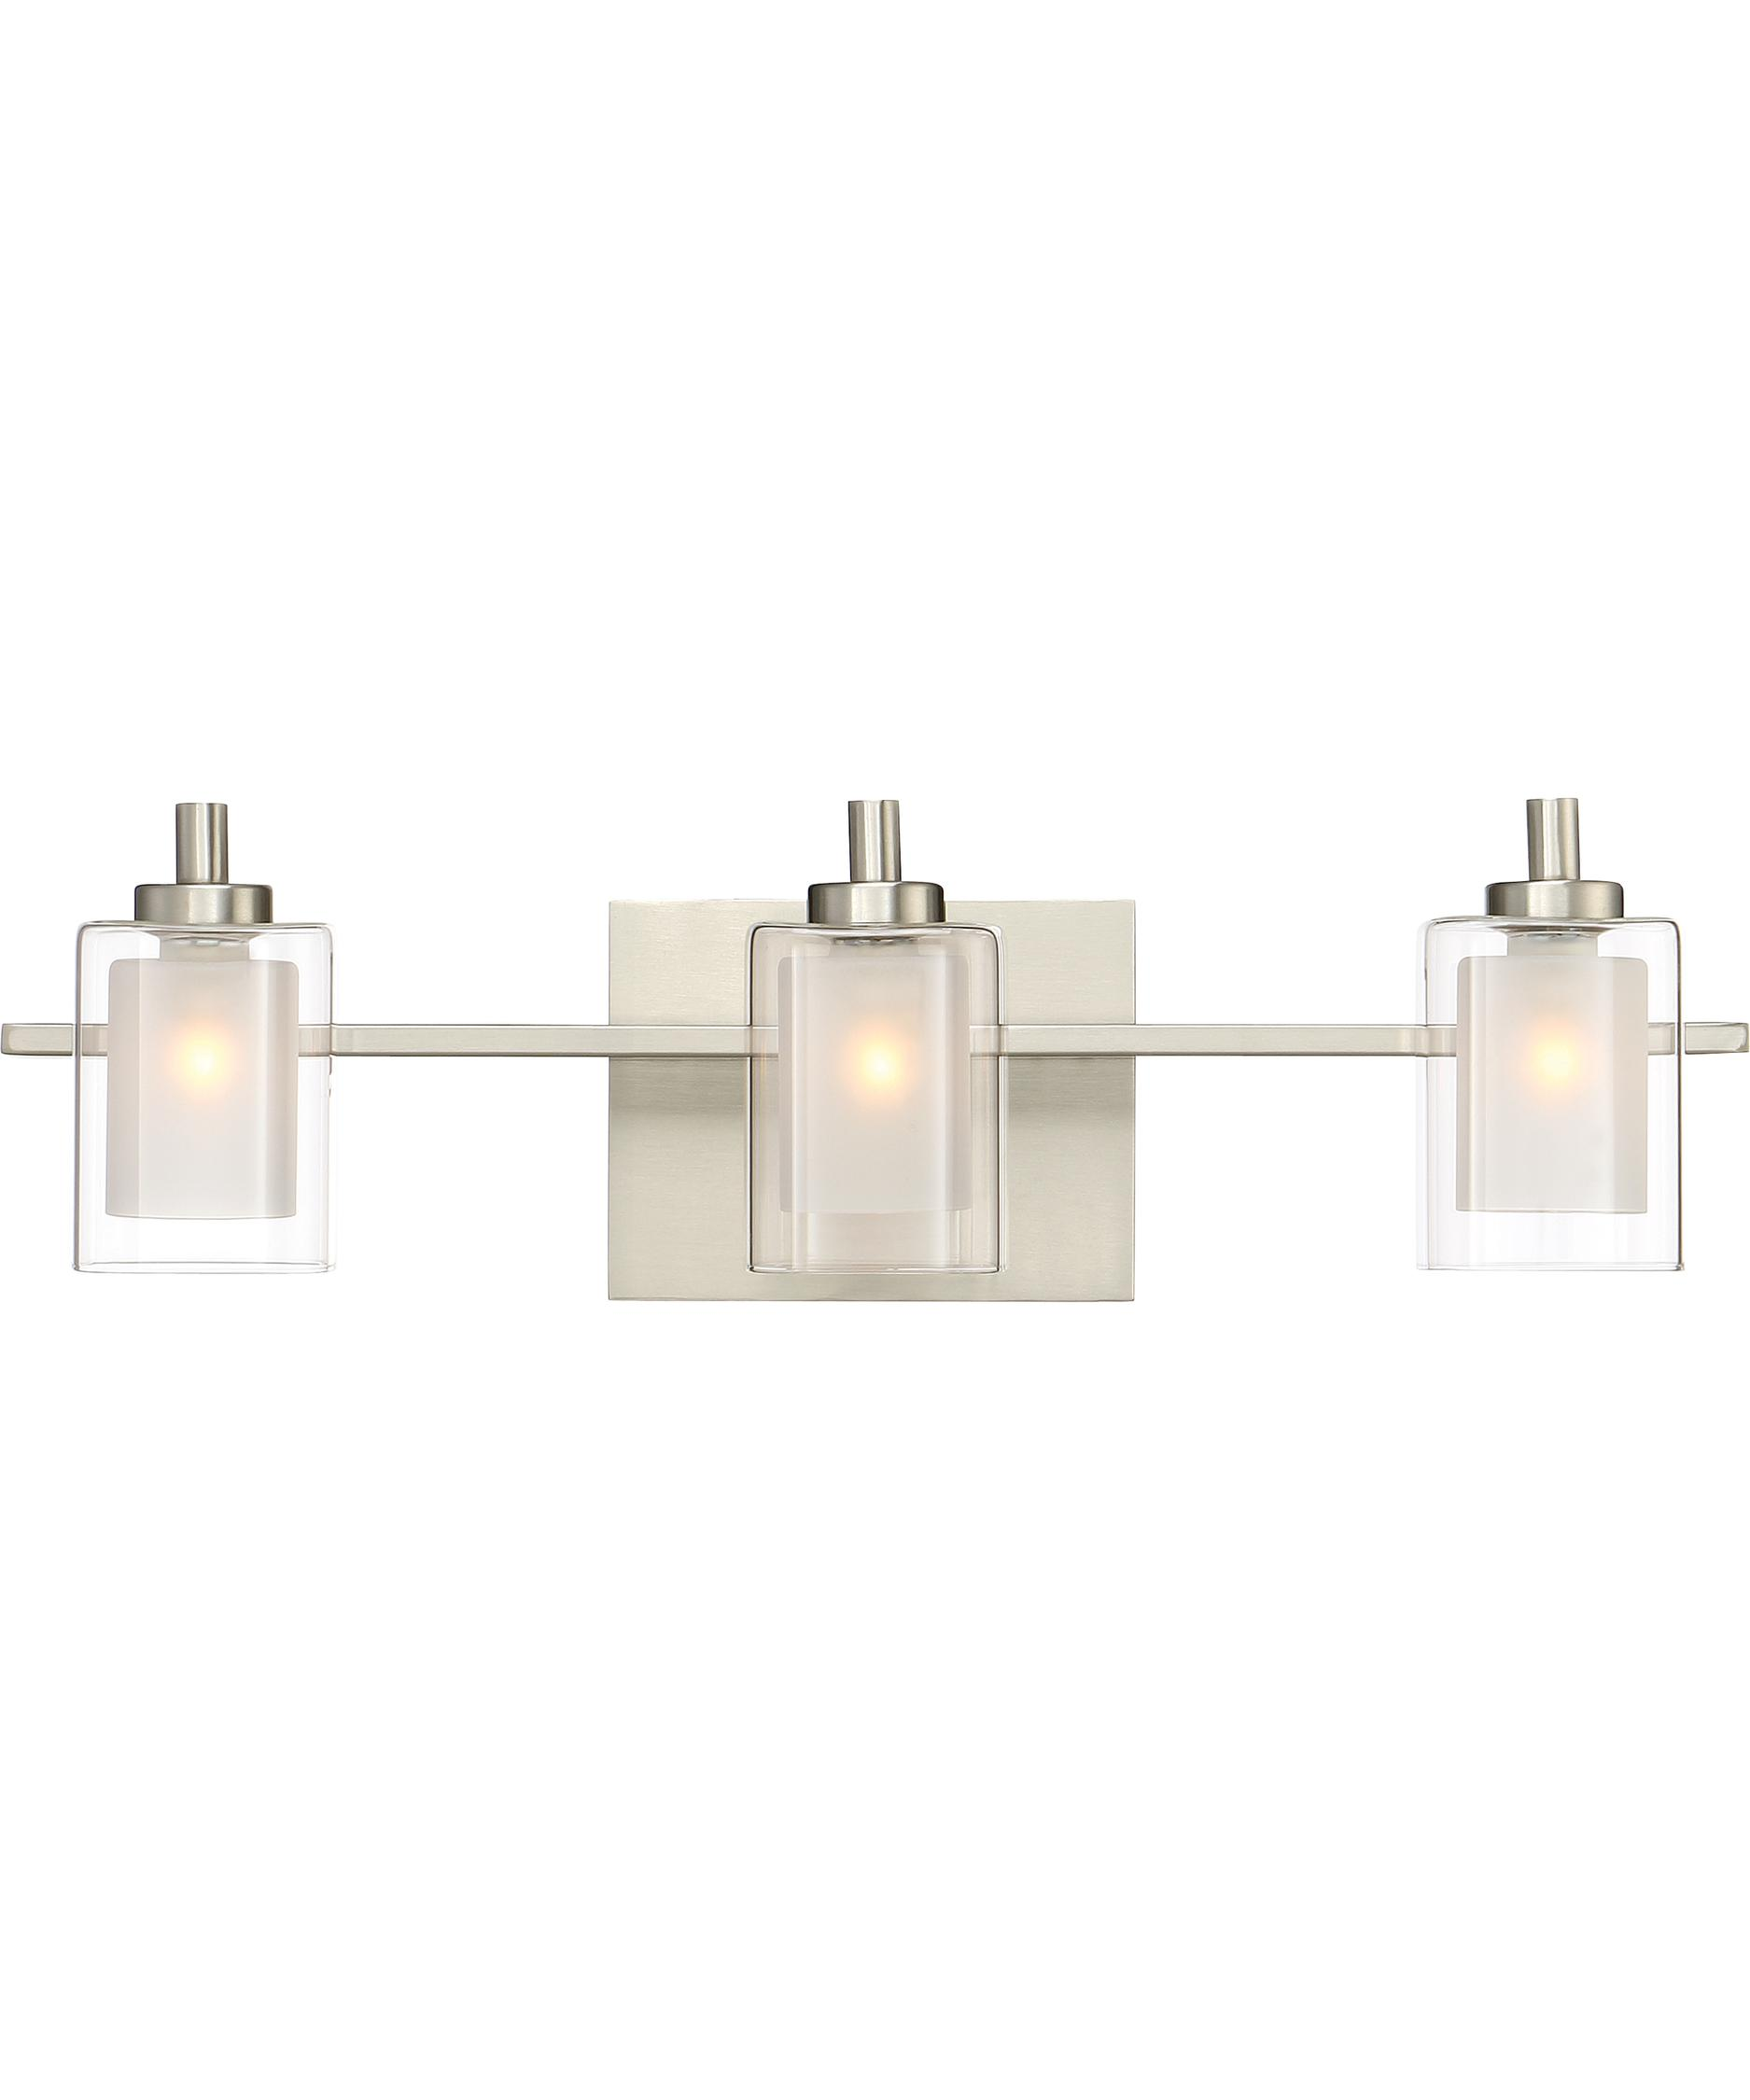 Quoizel KLT8603 Kolt 21 Inch Wide Bath Vanity Light Capitol